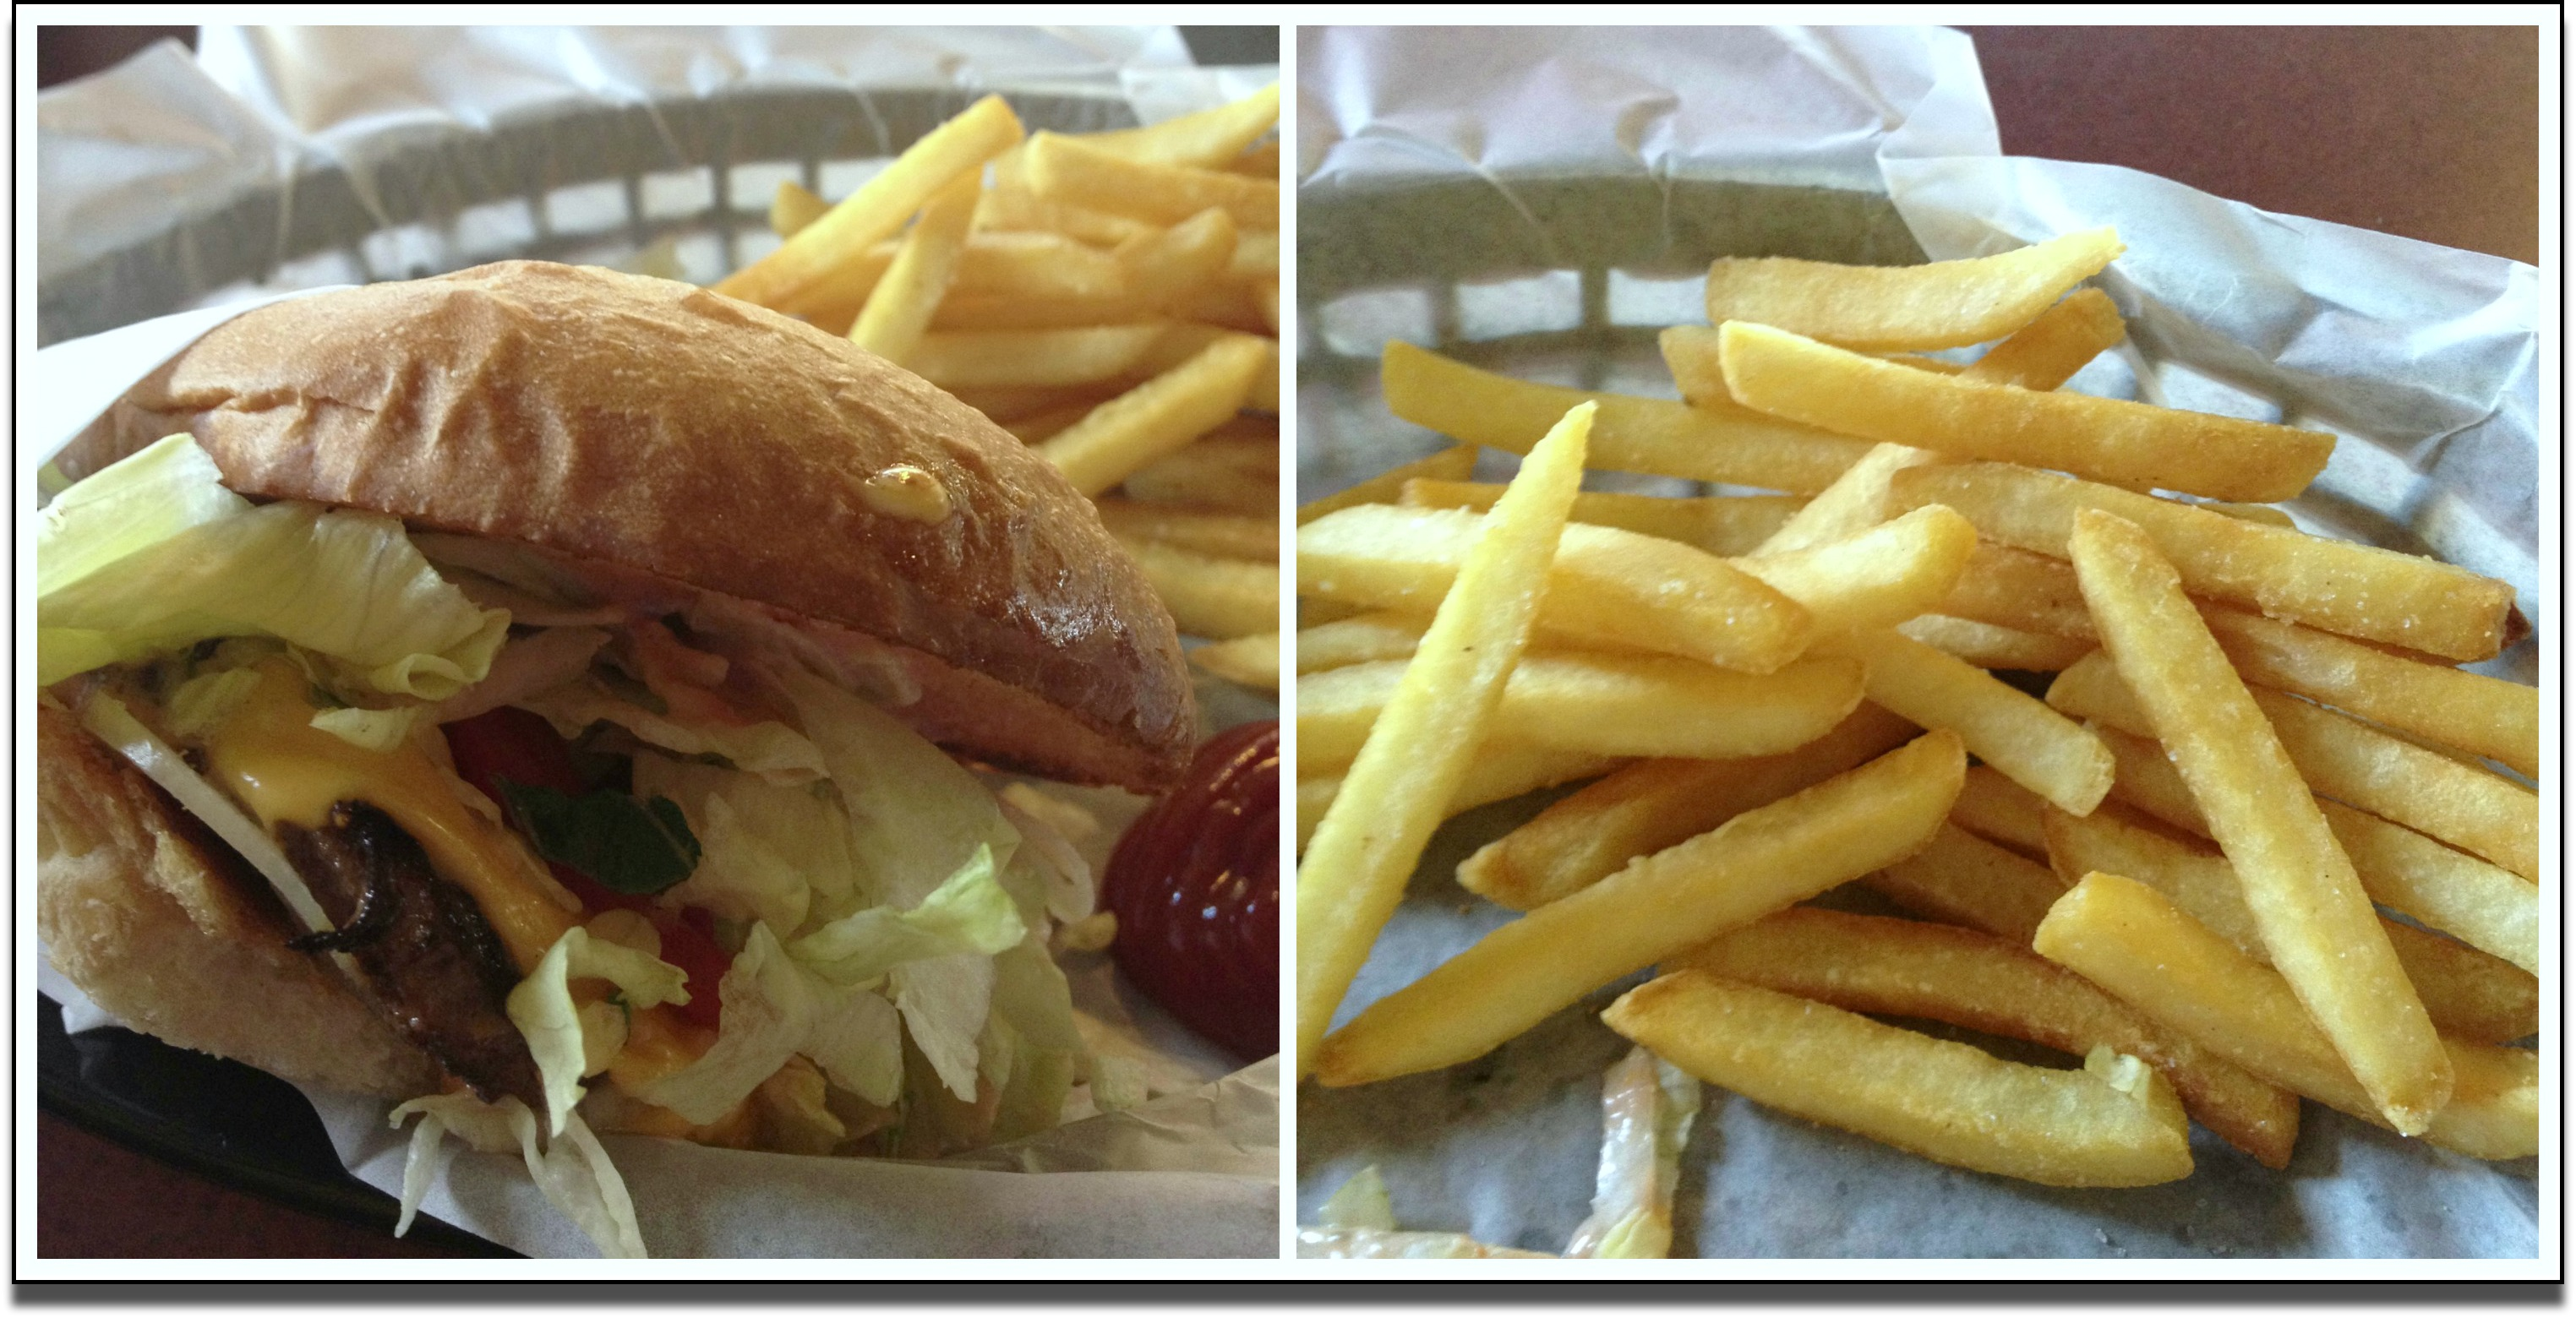 Dukes burger and Fries